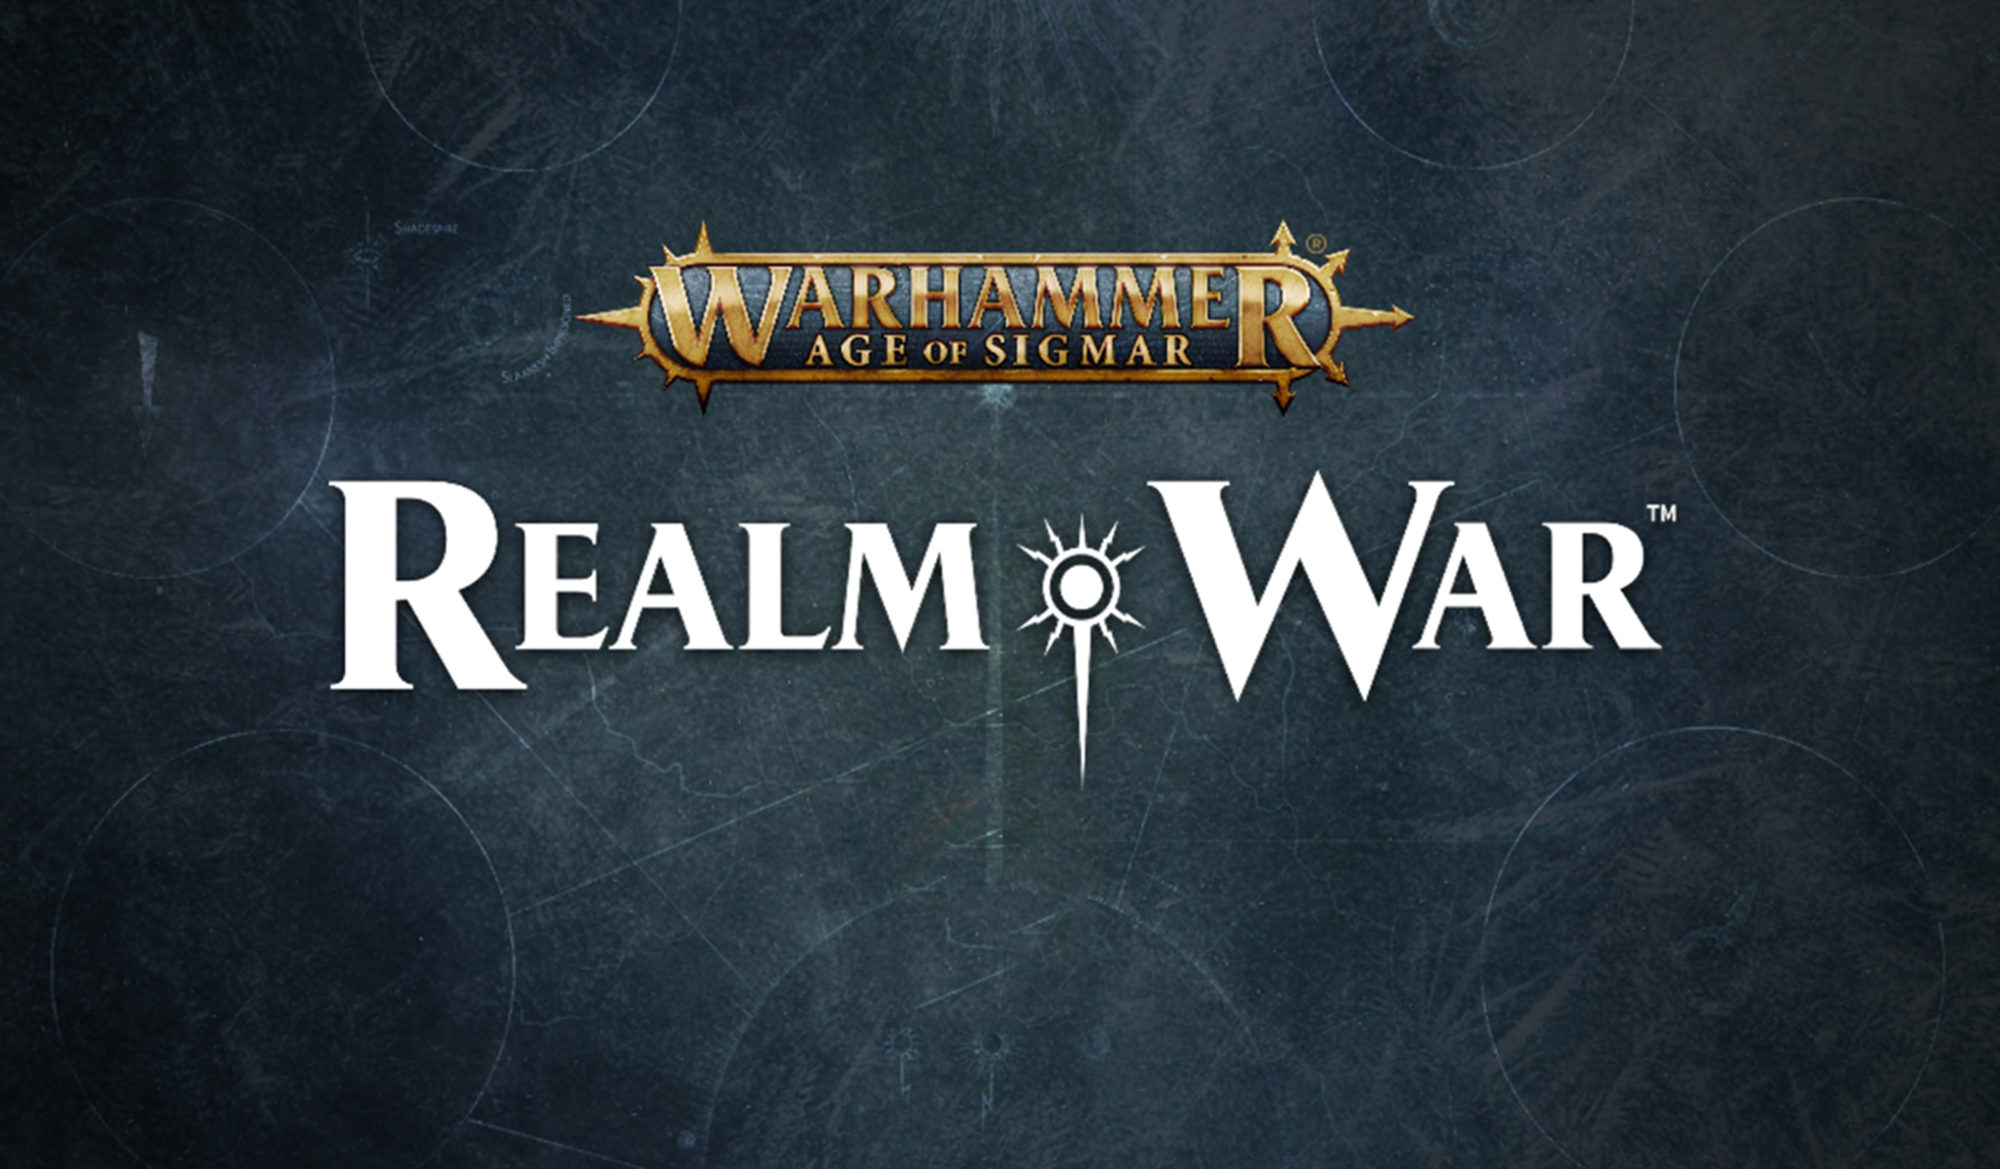 tipsandtricks - age of sigmar - realm war